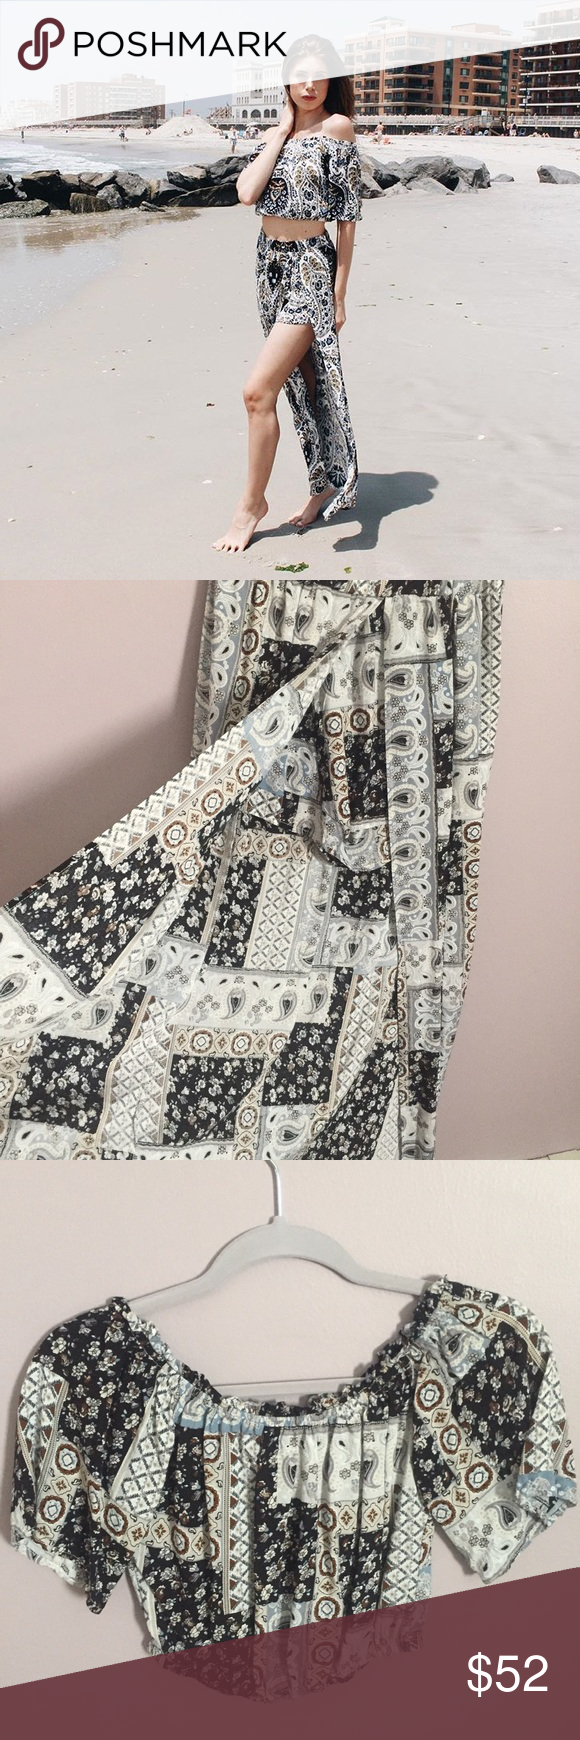 Illa illa piece maxi top skirt new without tags ium a little